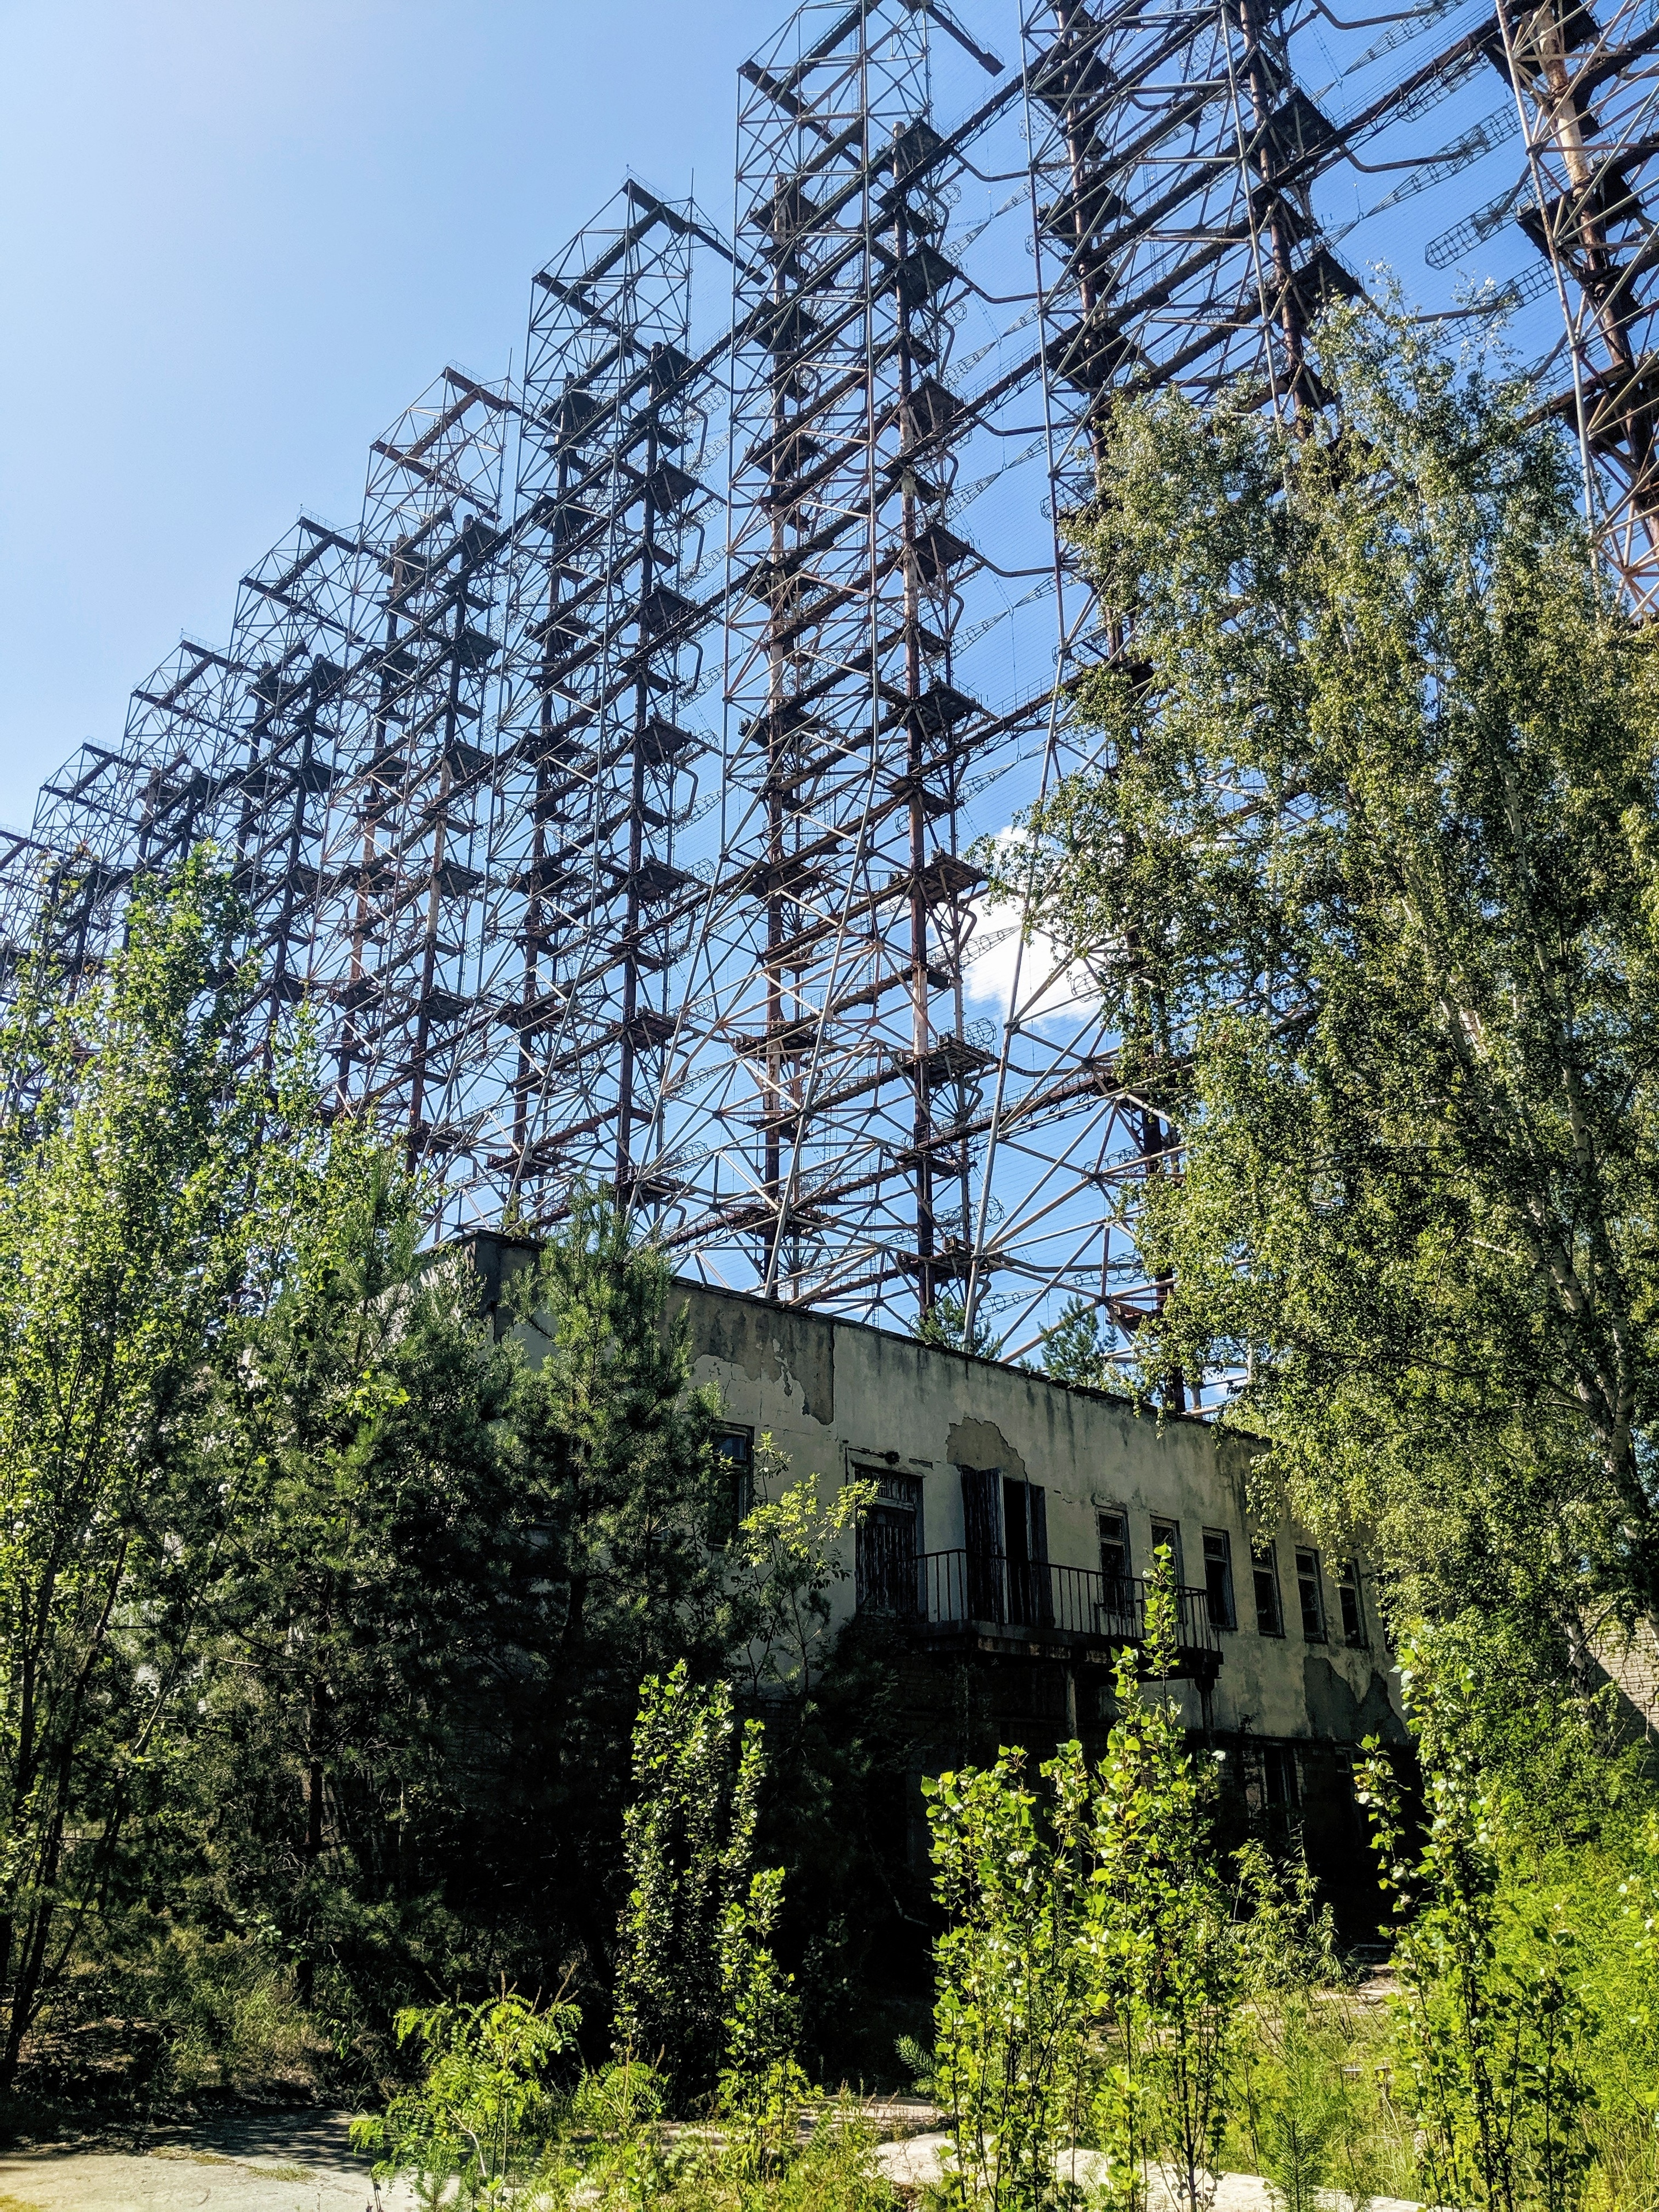 Chernobyl photos - Duga radar view